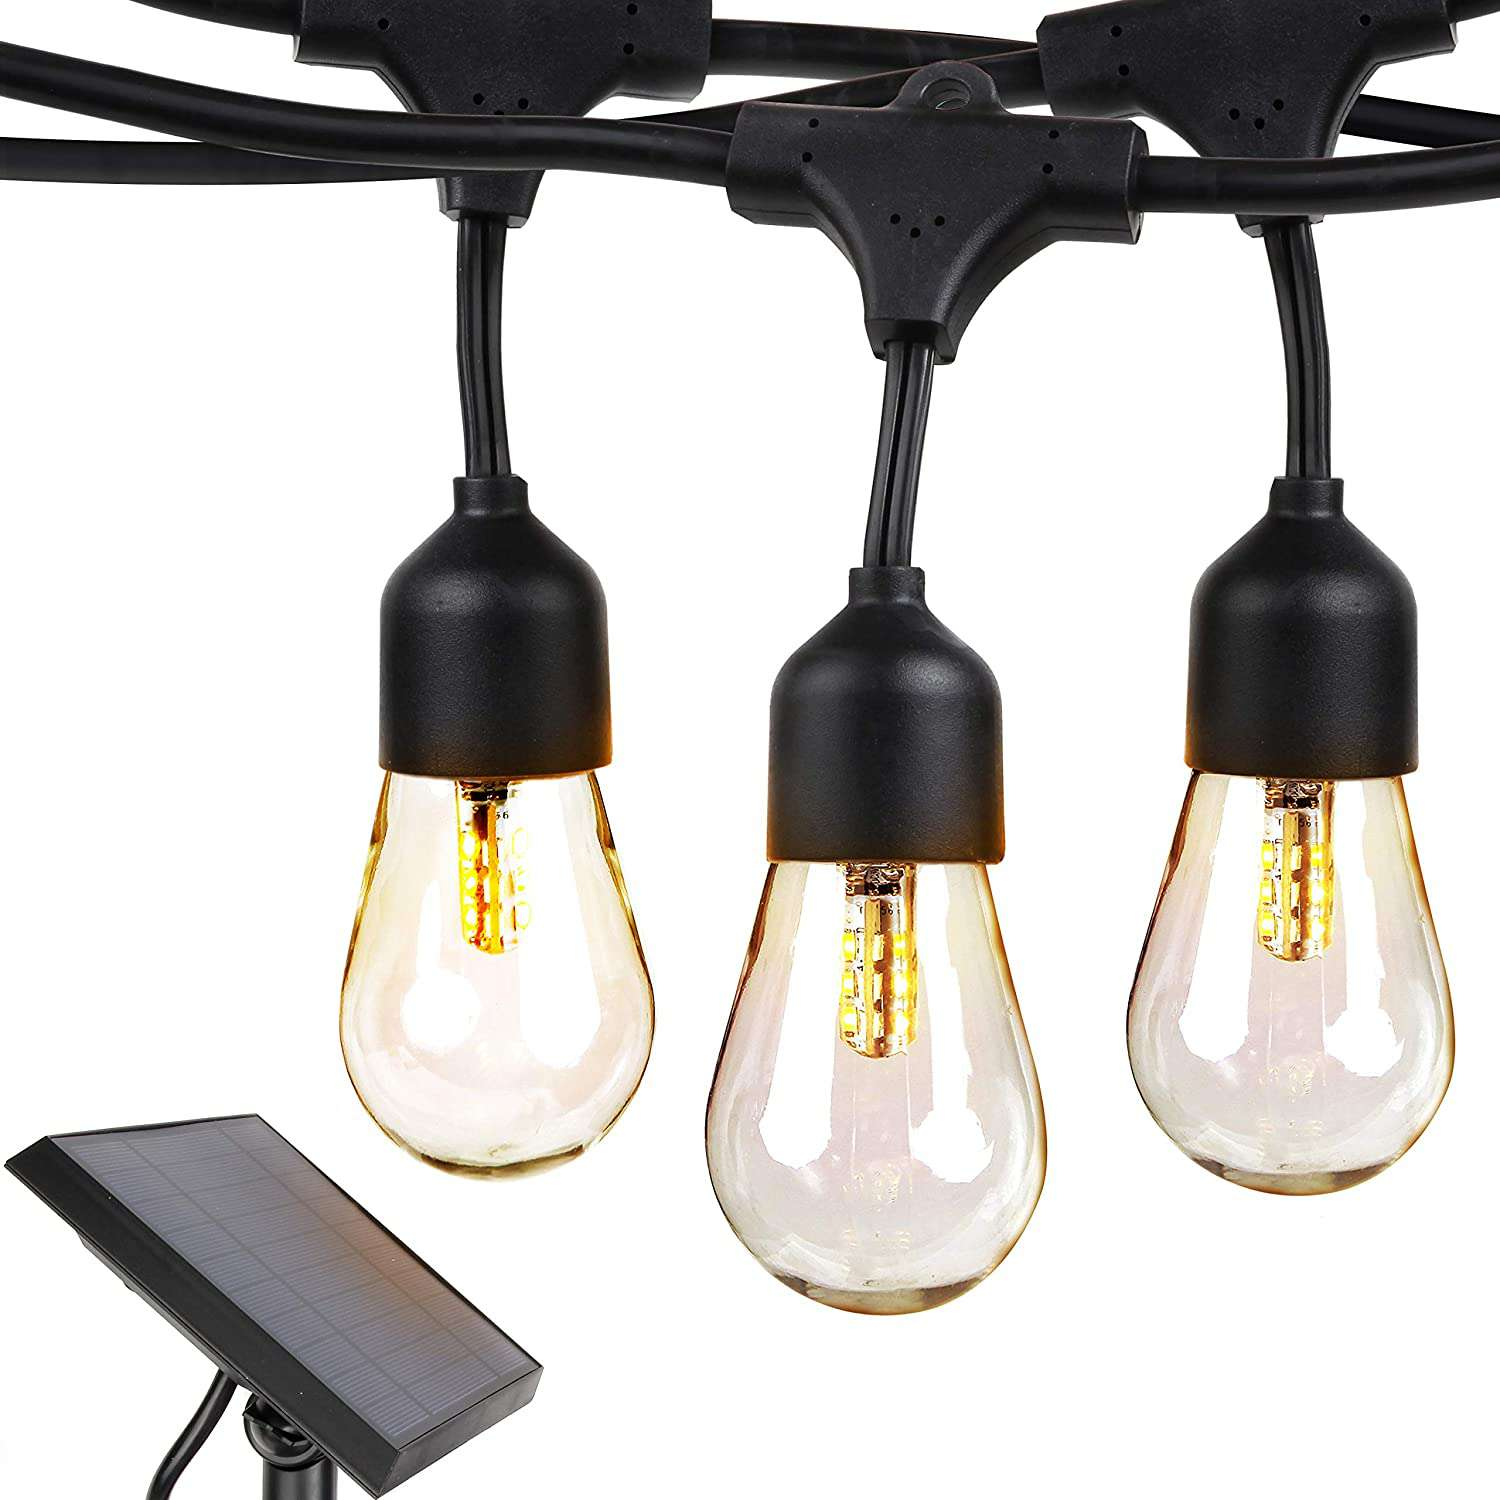 Brightech Ambience Pro Solar 27 Ft Edison Bulb Outdoor String Lights